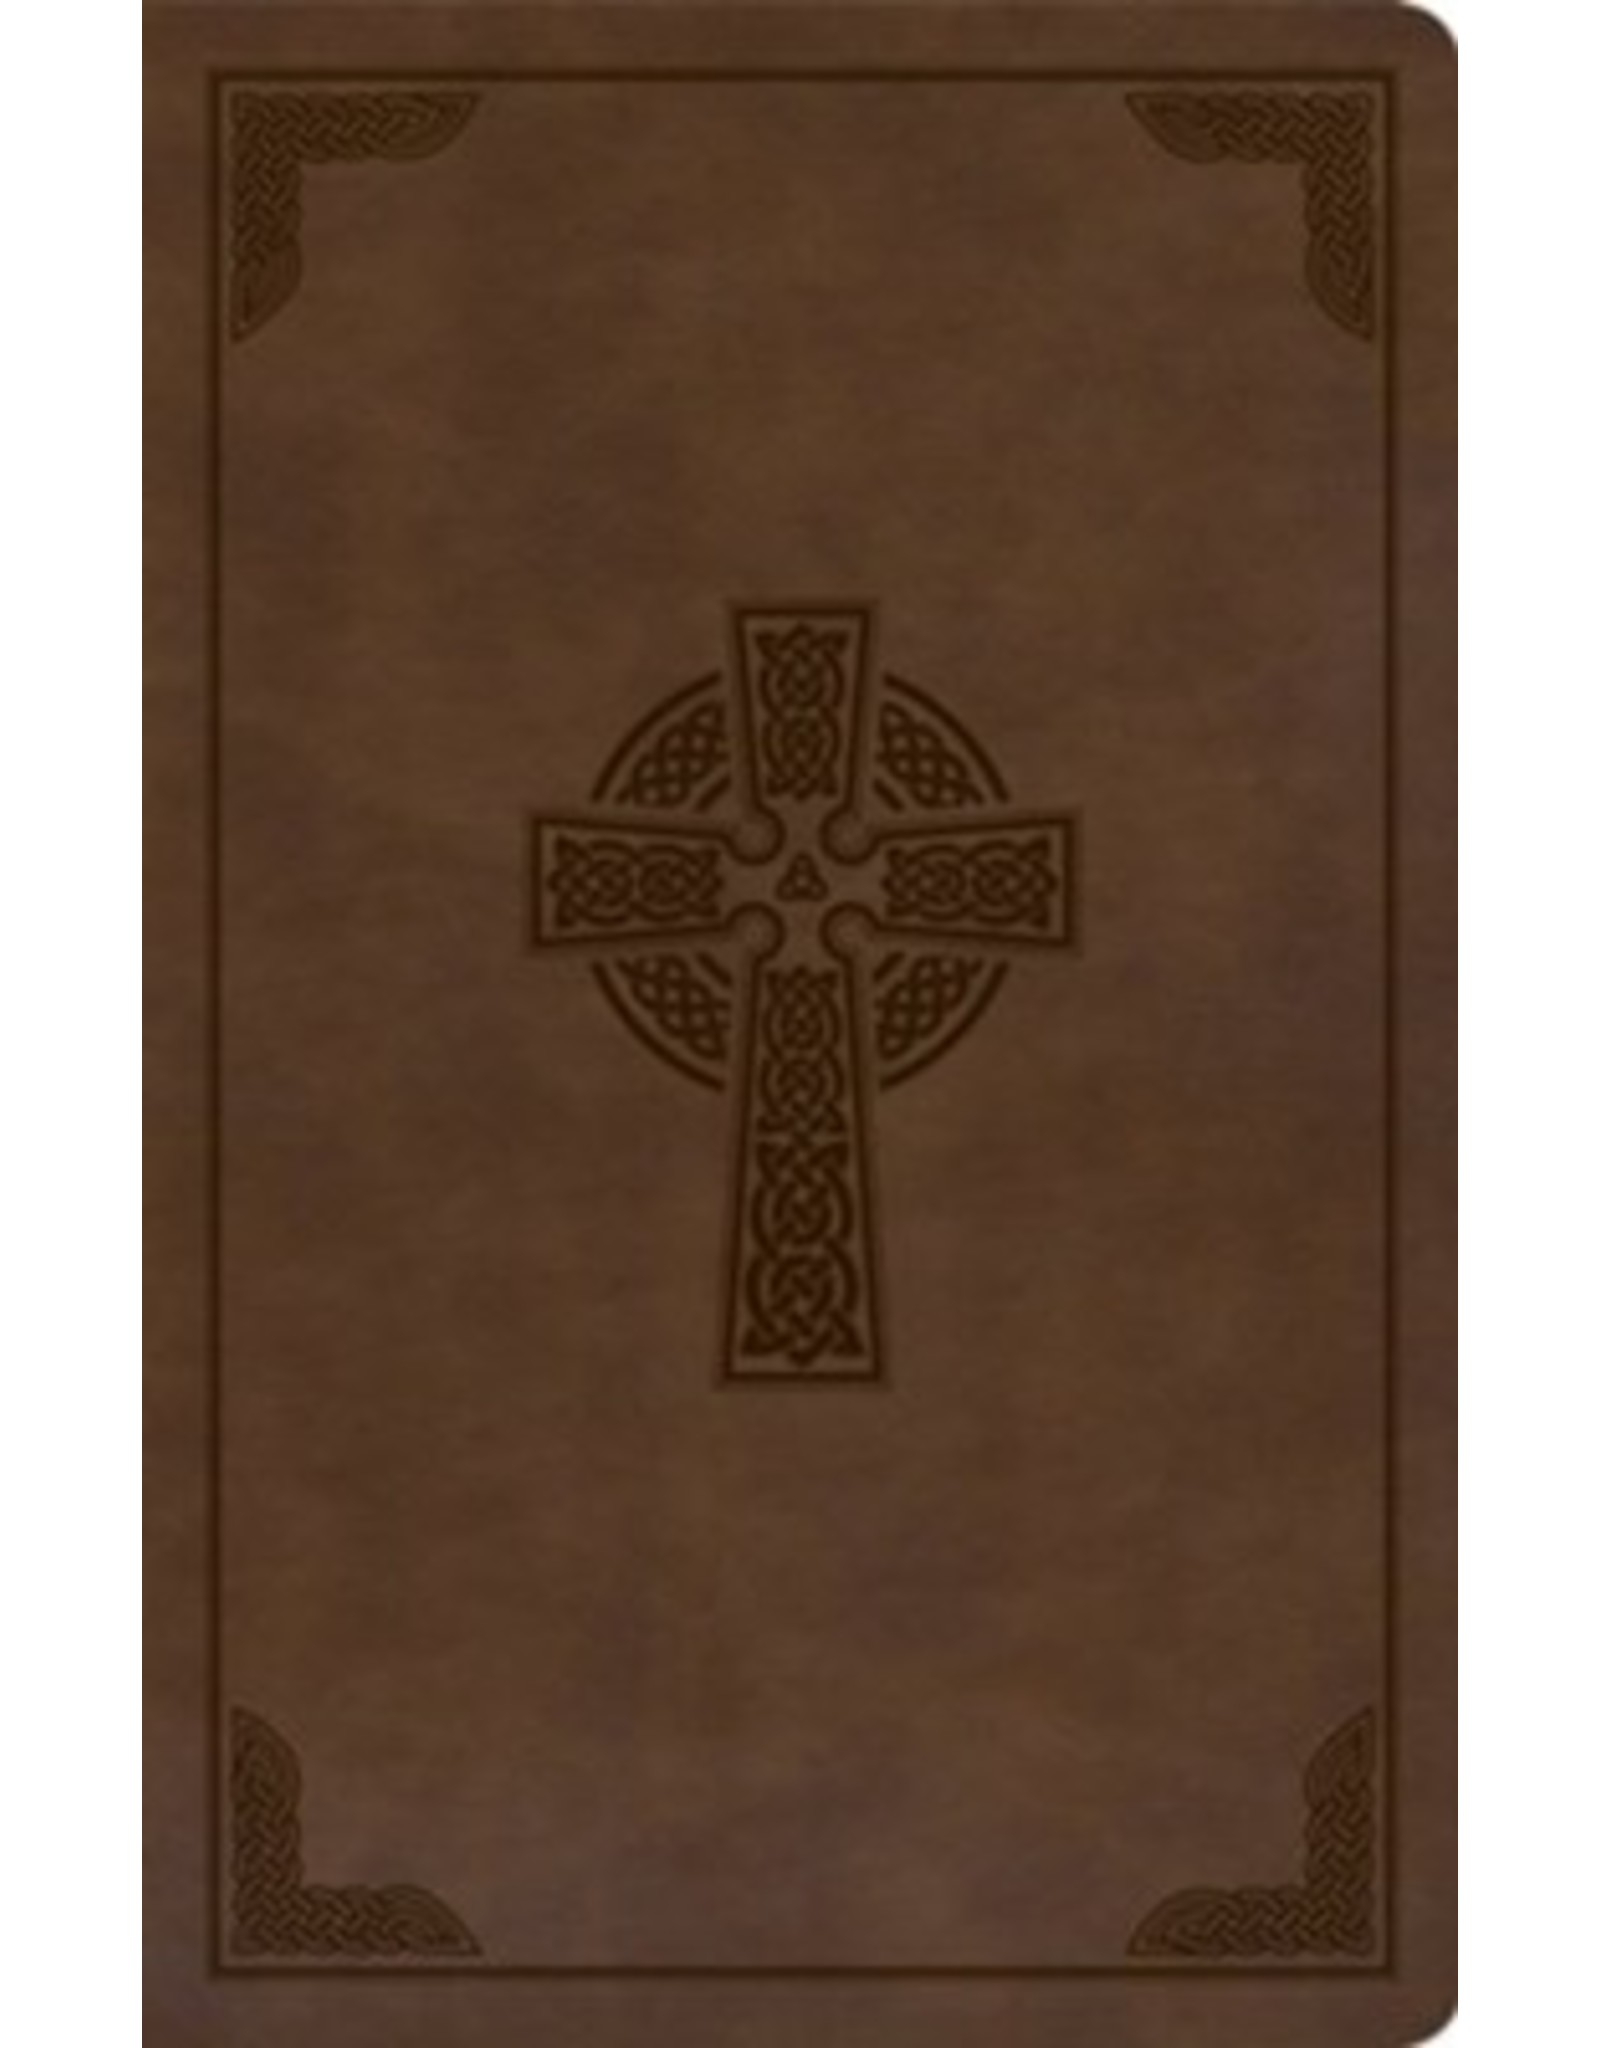 Holman CSB Bible - Large print, Celtic Cross, Brown Leather touch, INDEXED